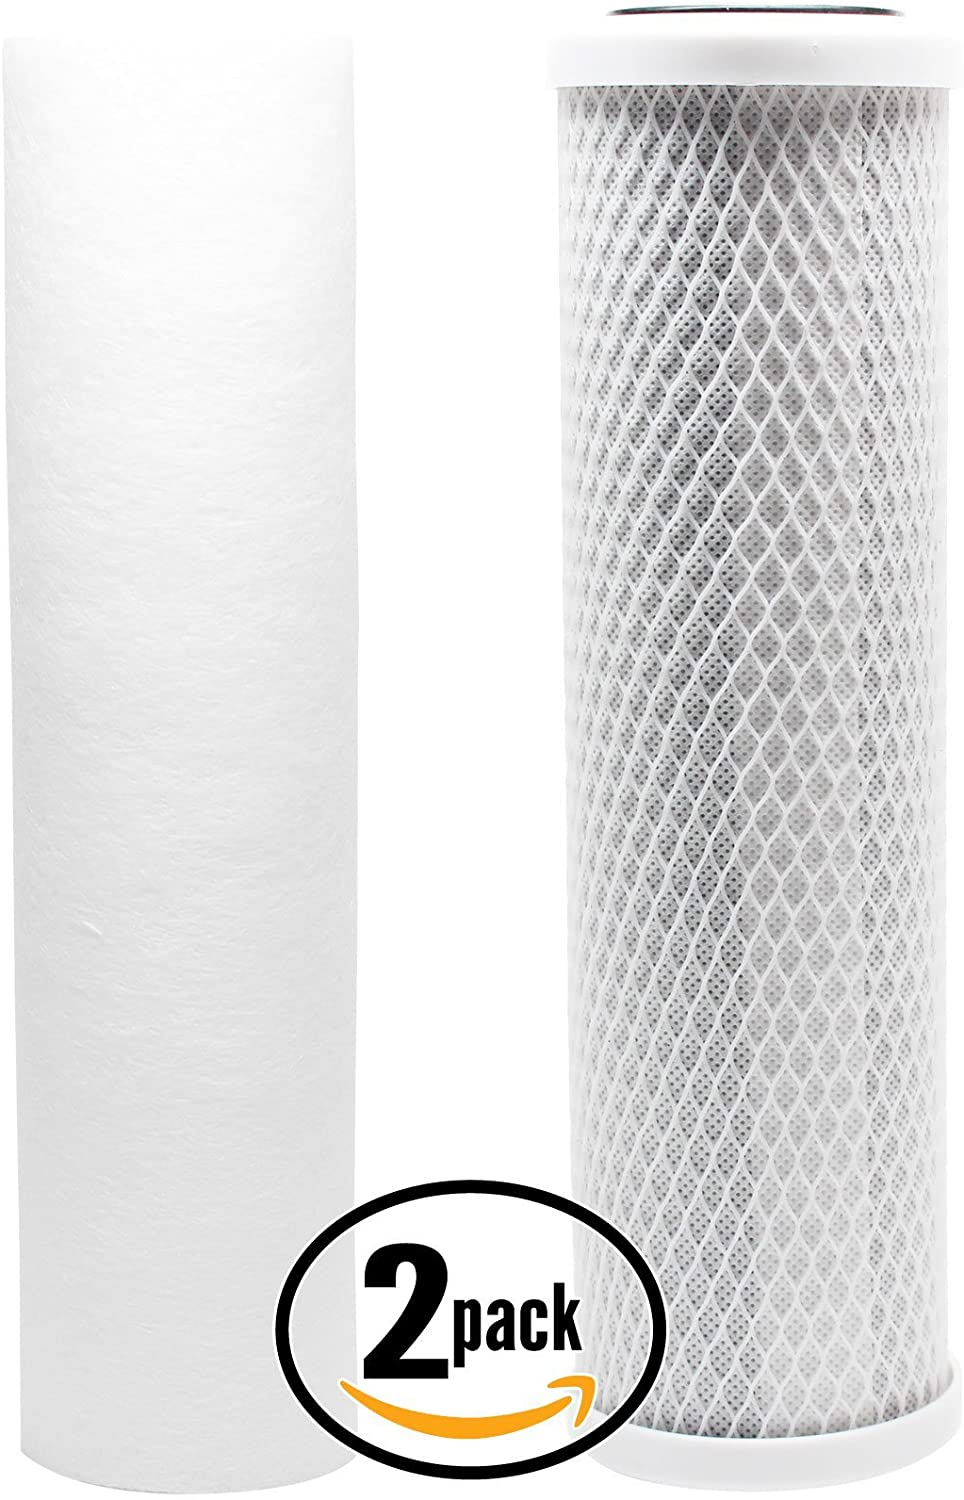 Includes Carbon Block Filter /& PP Sediment Filter 2-Pack Replacement Filter Kit Compatible with Watts UV-R 3 RO System Denali Pure Brand